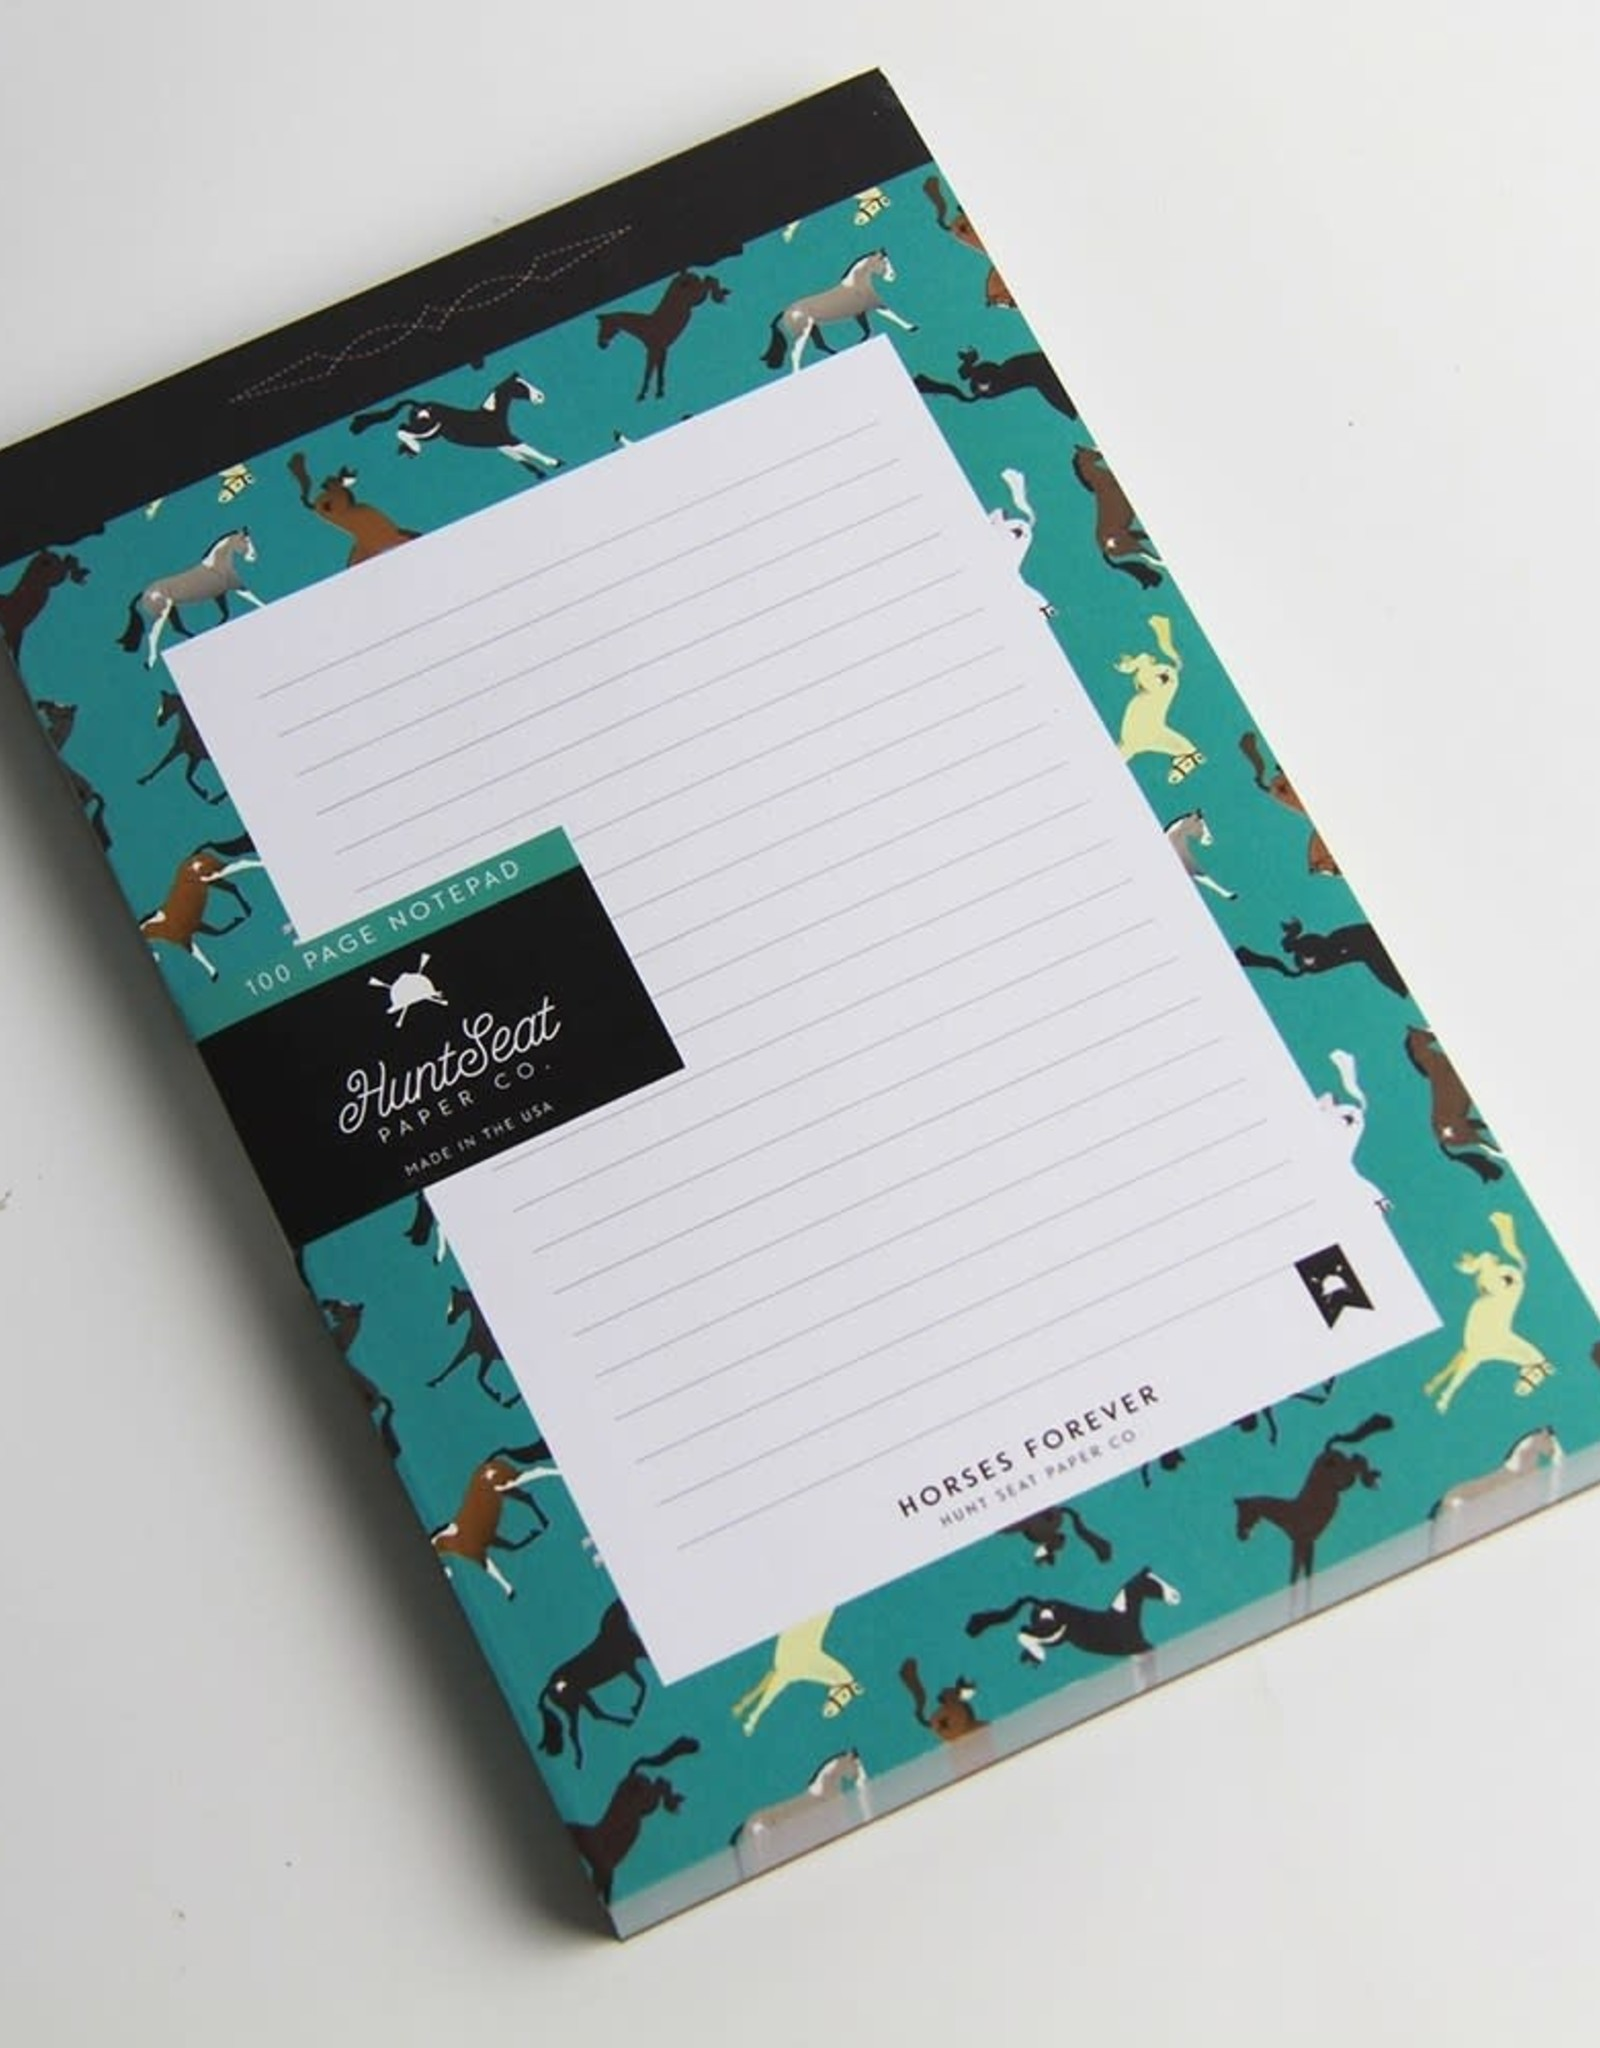 HUNTSEAT PAPER CO. NOTEPAD